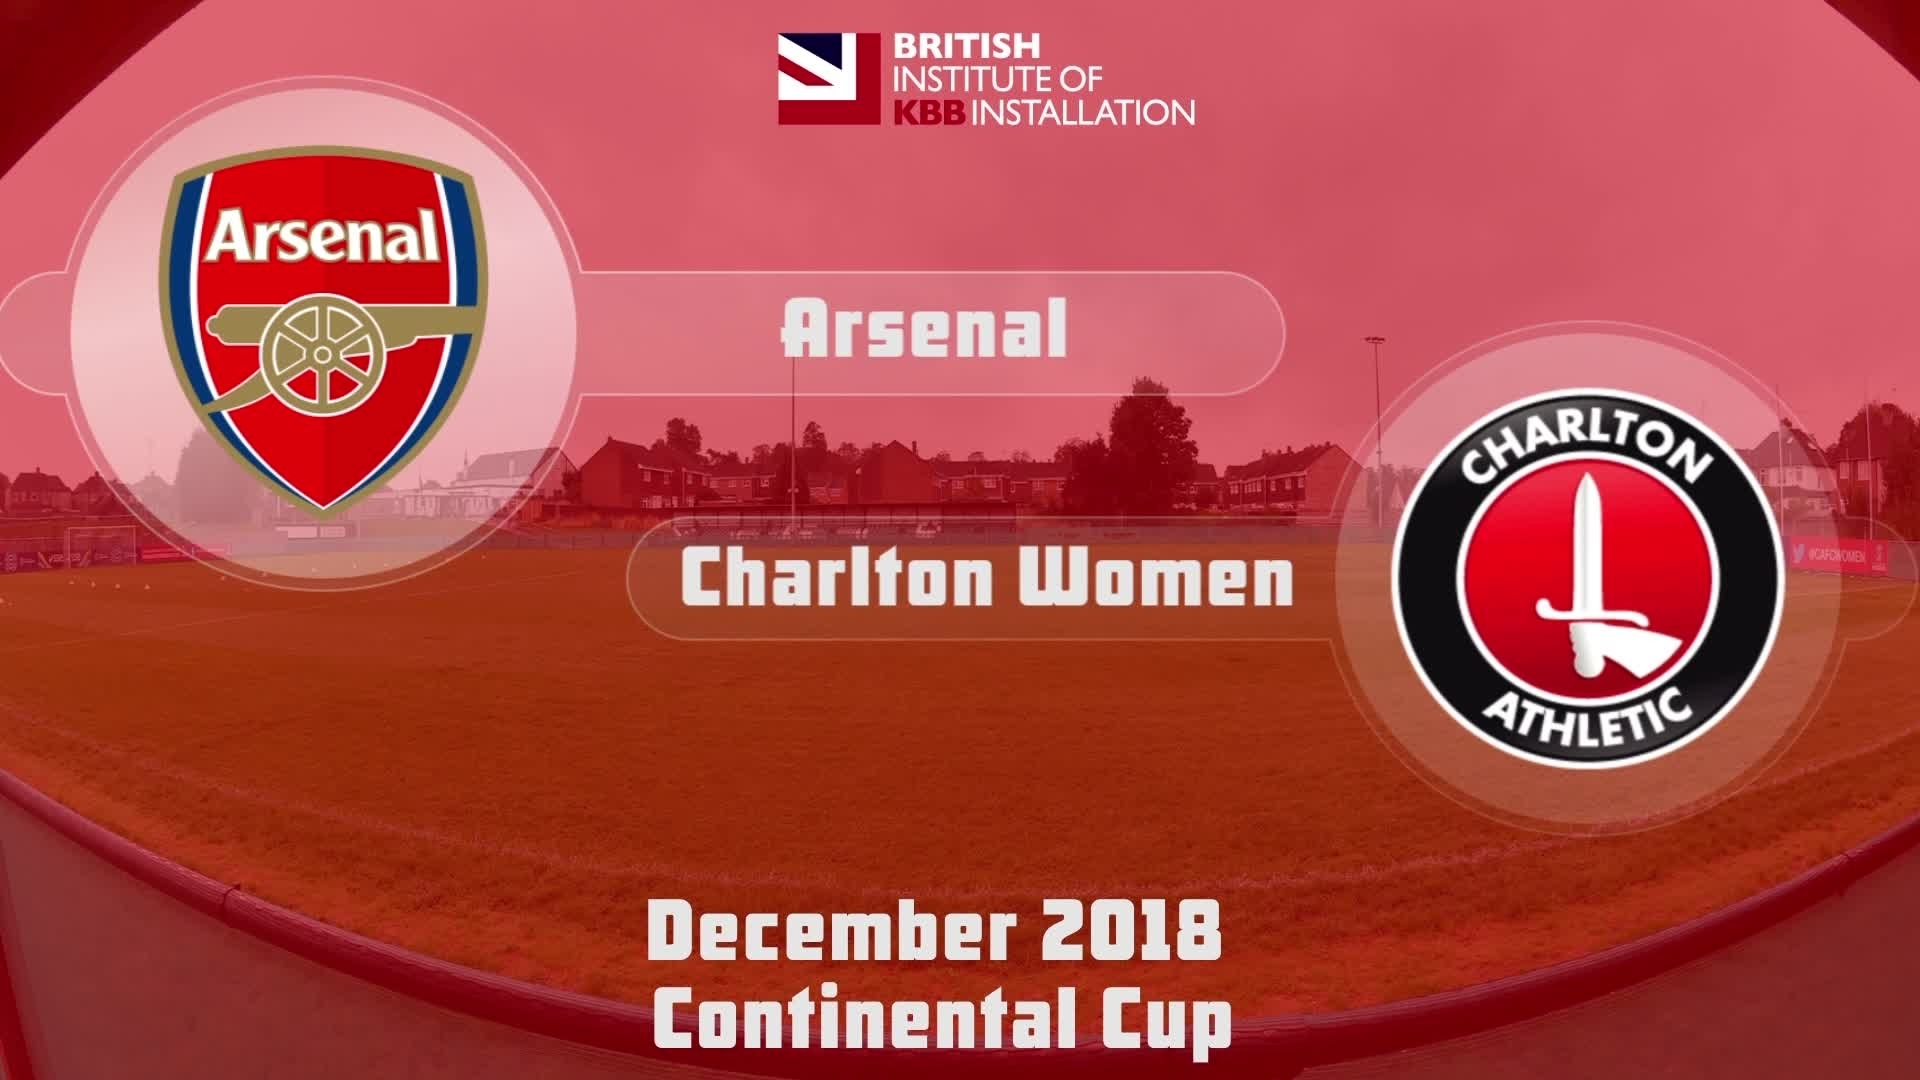 WOMEN HIGHLIGHTS | Arsenal 5 Charlton 0 (Continental Cup Dec 2018)